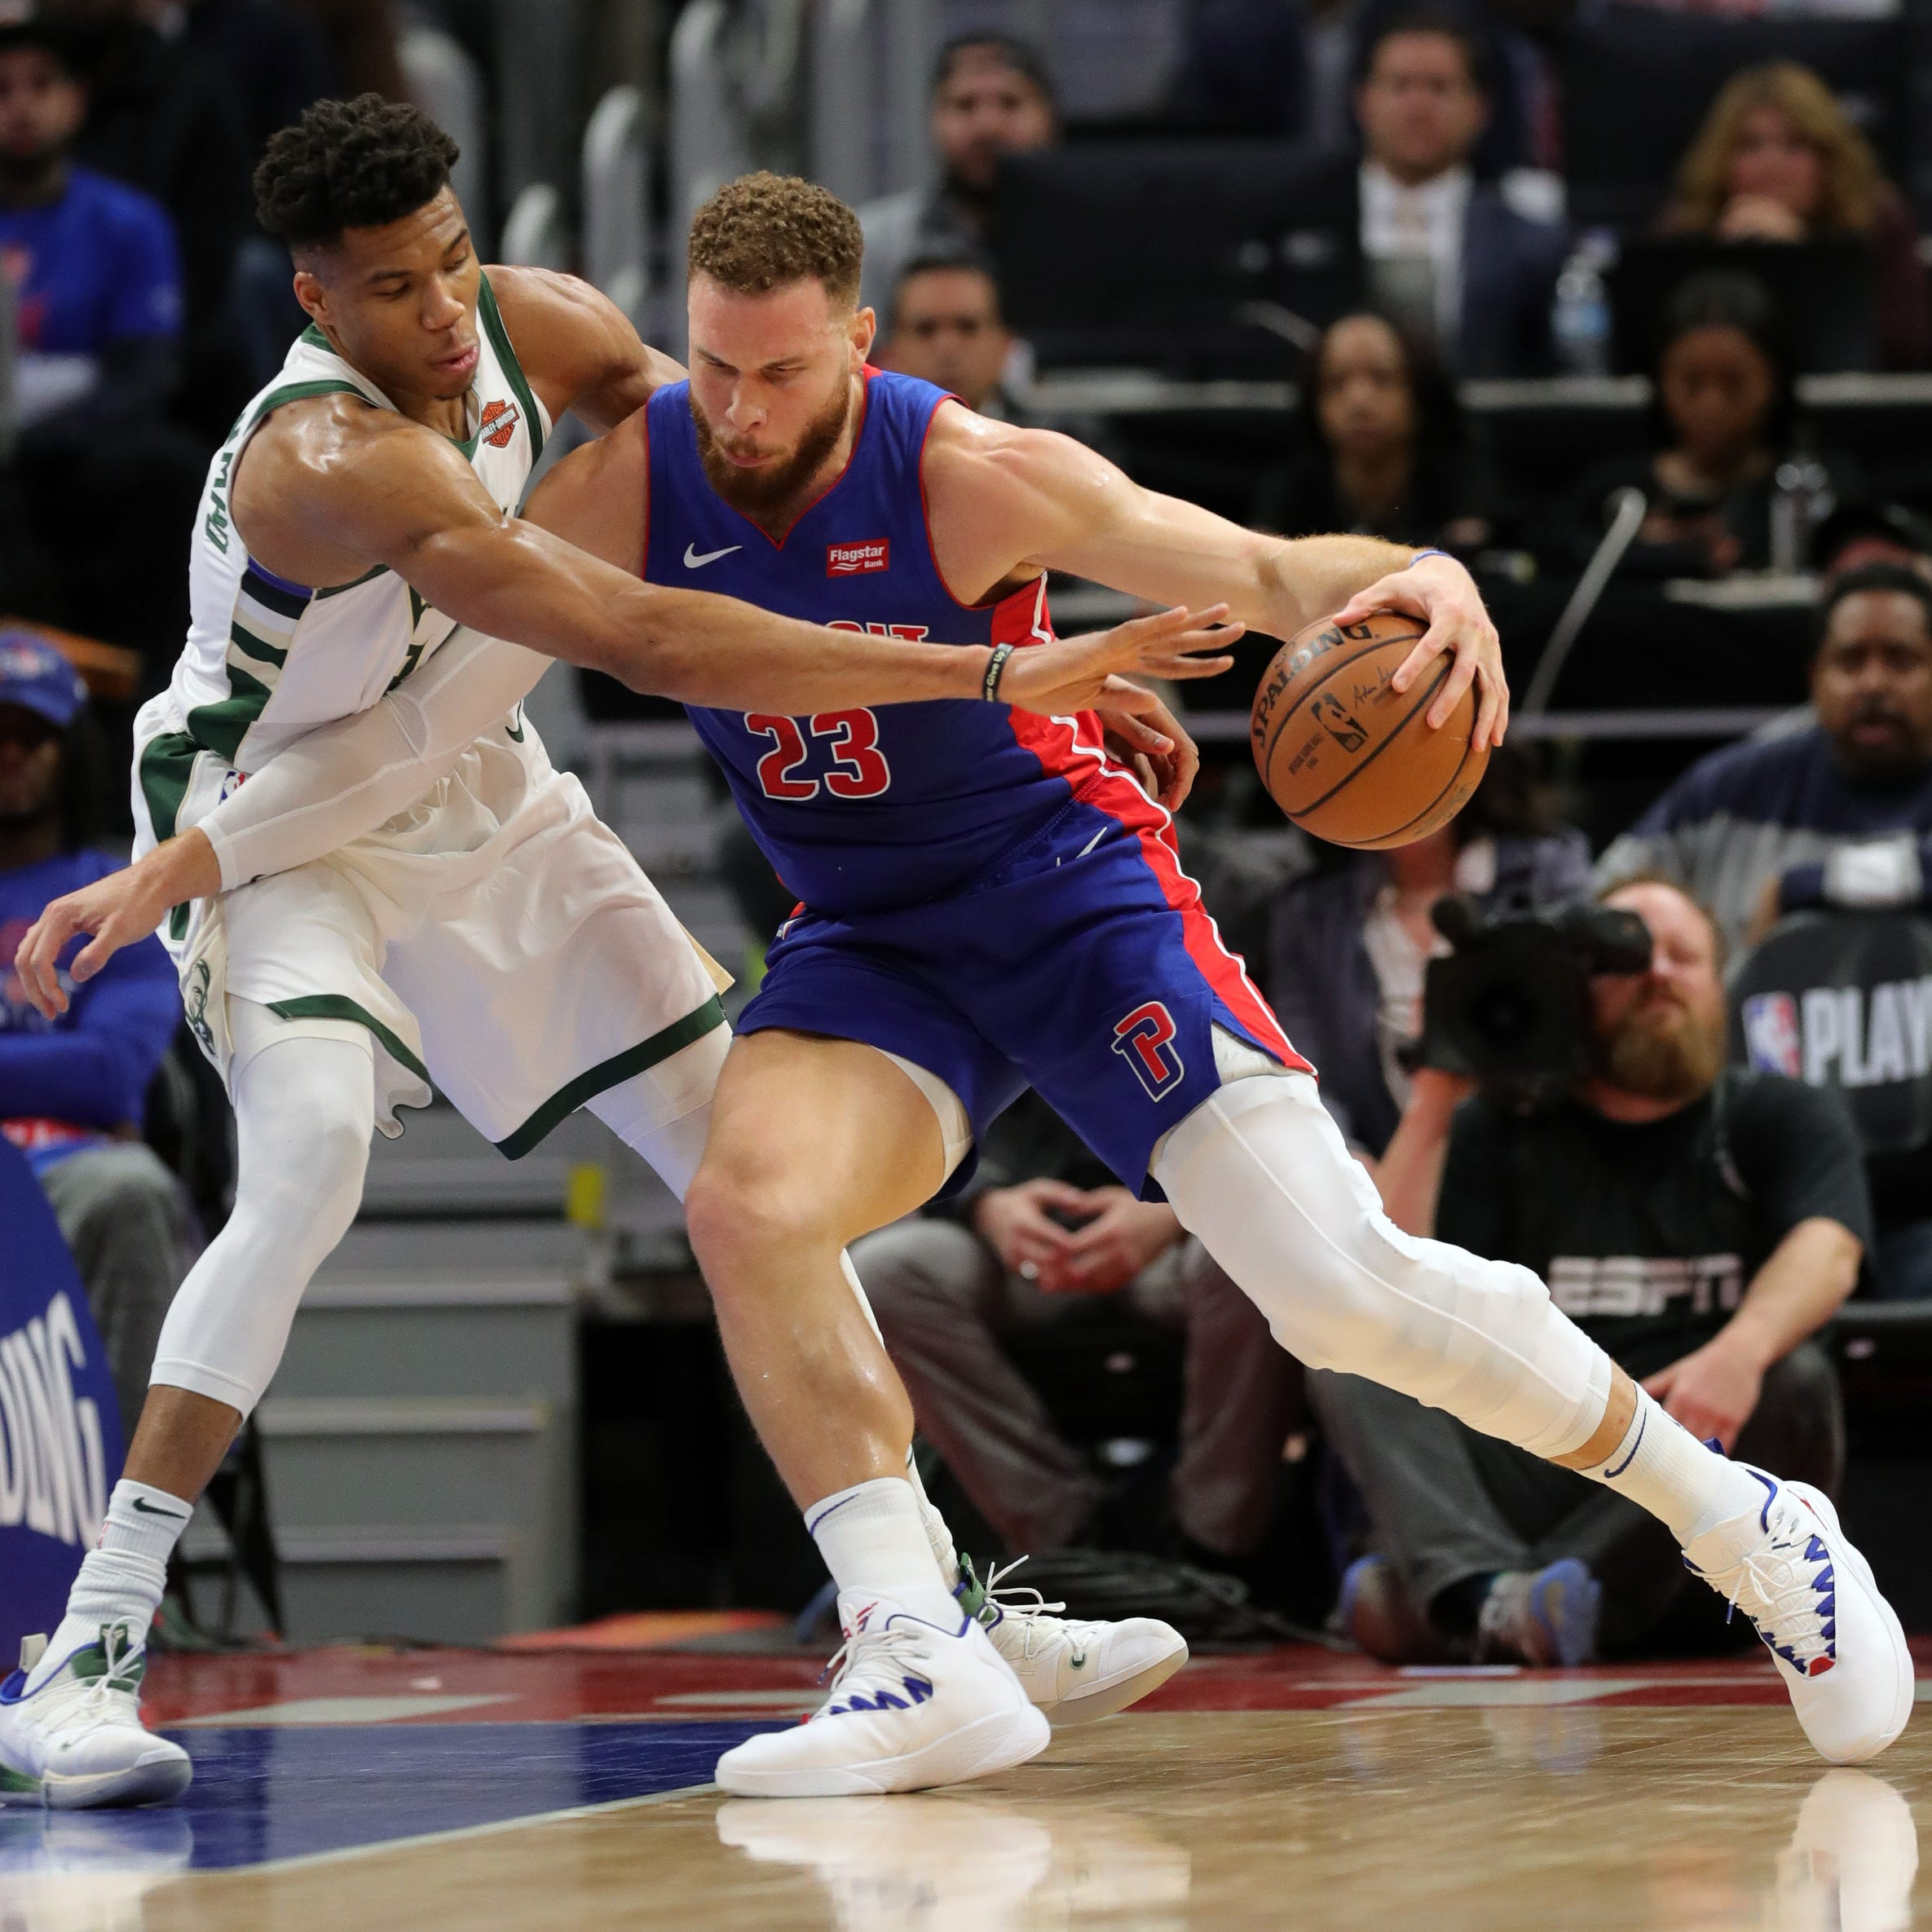 Pistons trampled by Bucks in Game 3 despite Blake Griffin's gutsy performance